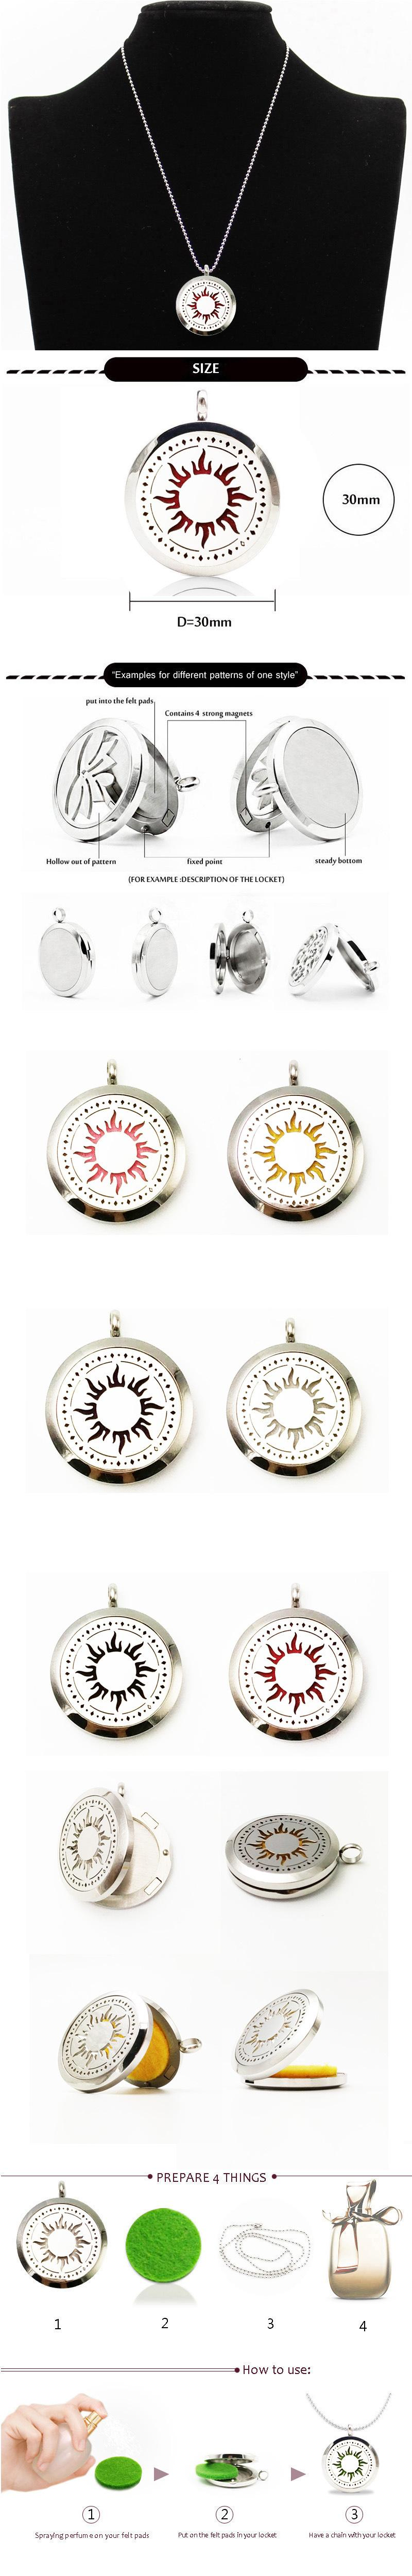 Wholesale New Arrival Hot Sale Aromatherapy Jewelry Necklace Vintage